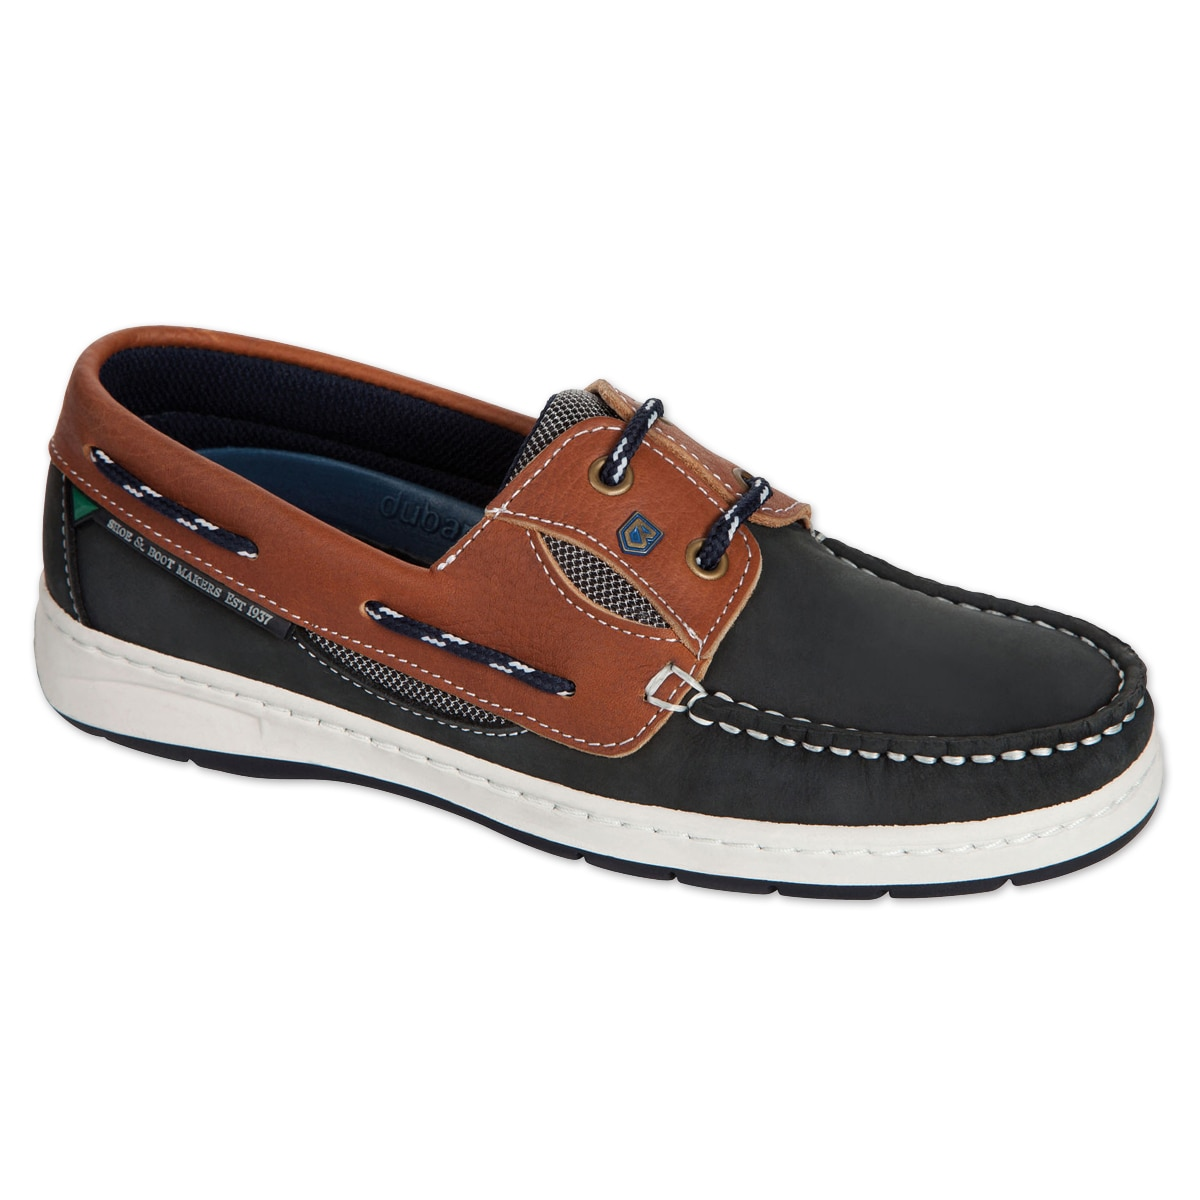 Dubarry Crete Ladies Deck Shoe